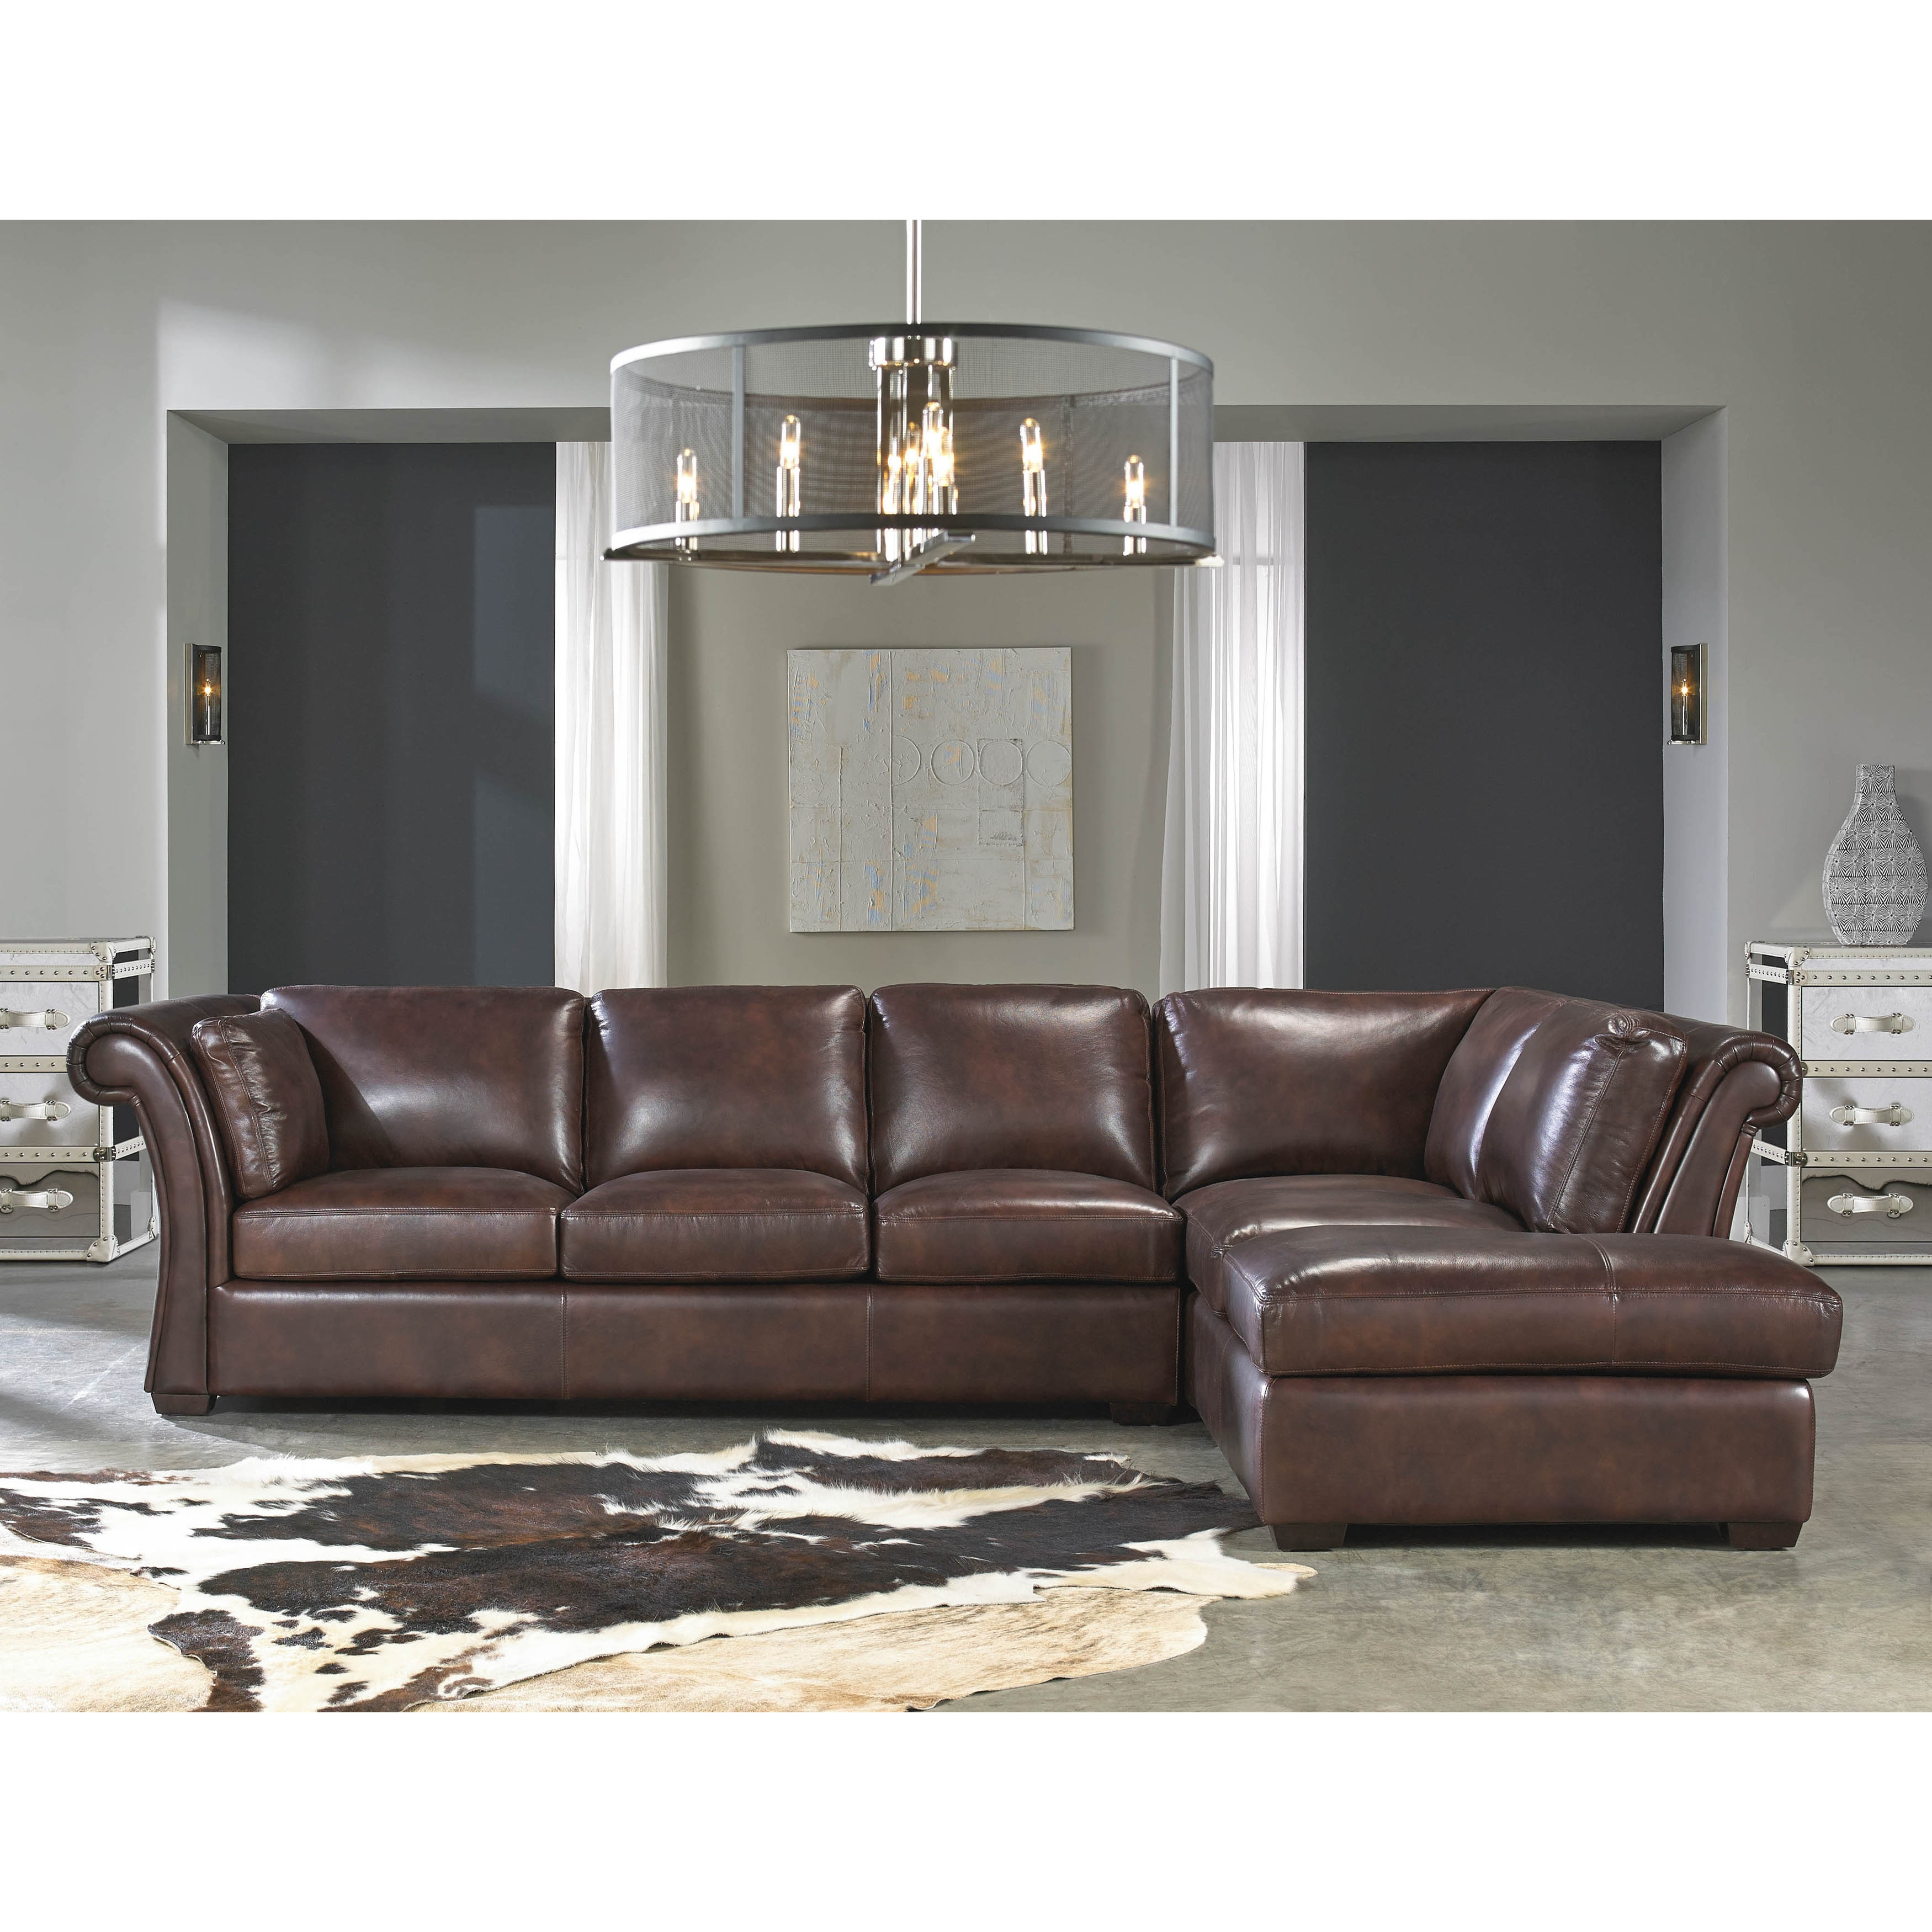 - Shop Lazzaro Leather Angelina Rustic Sauvage Two Piece Sectional